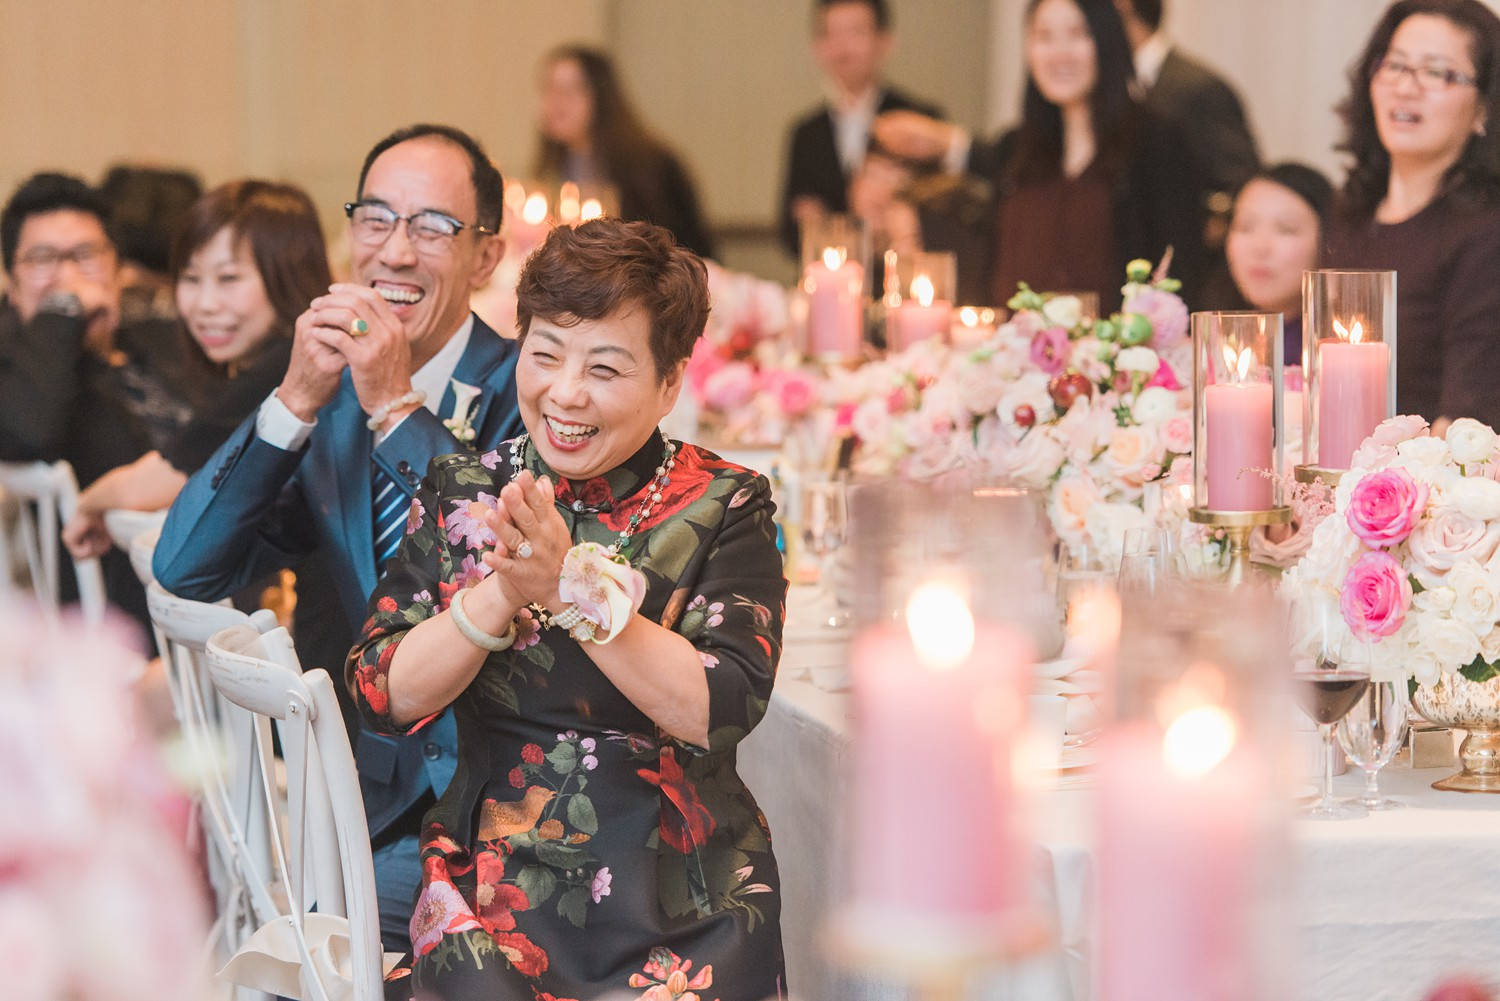 Parents of the Groom Vinci Room Luxury Yorkville Toronto Four Season Hotel Wedding Photos with Chinese Bride and Groom